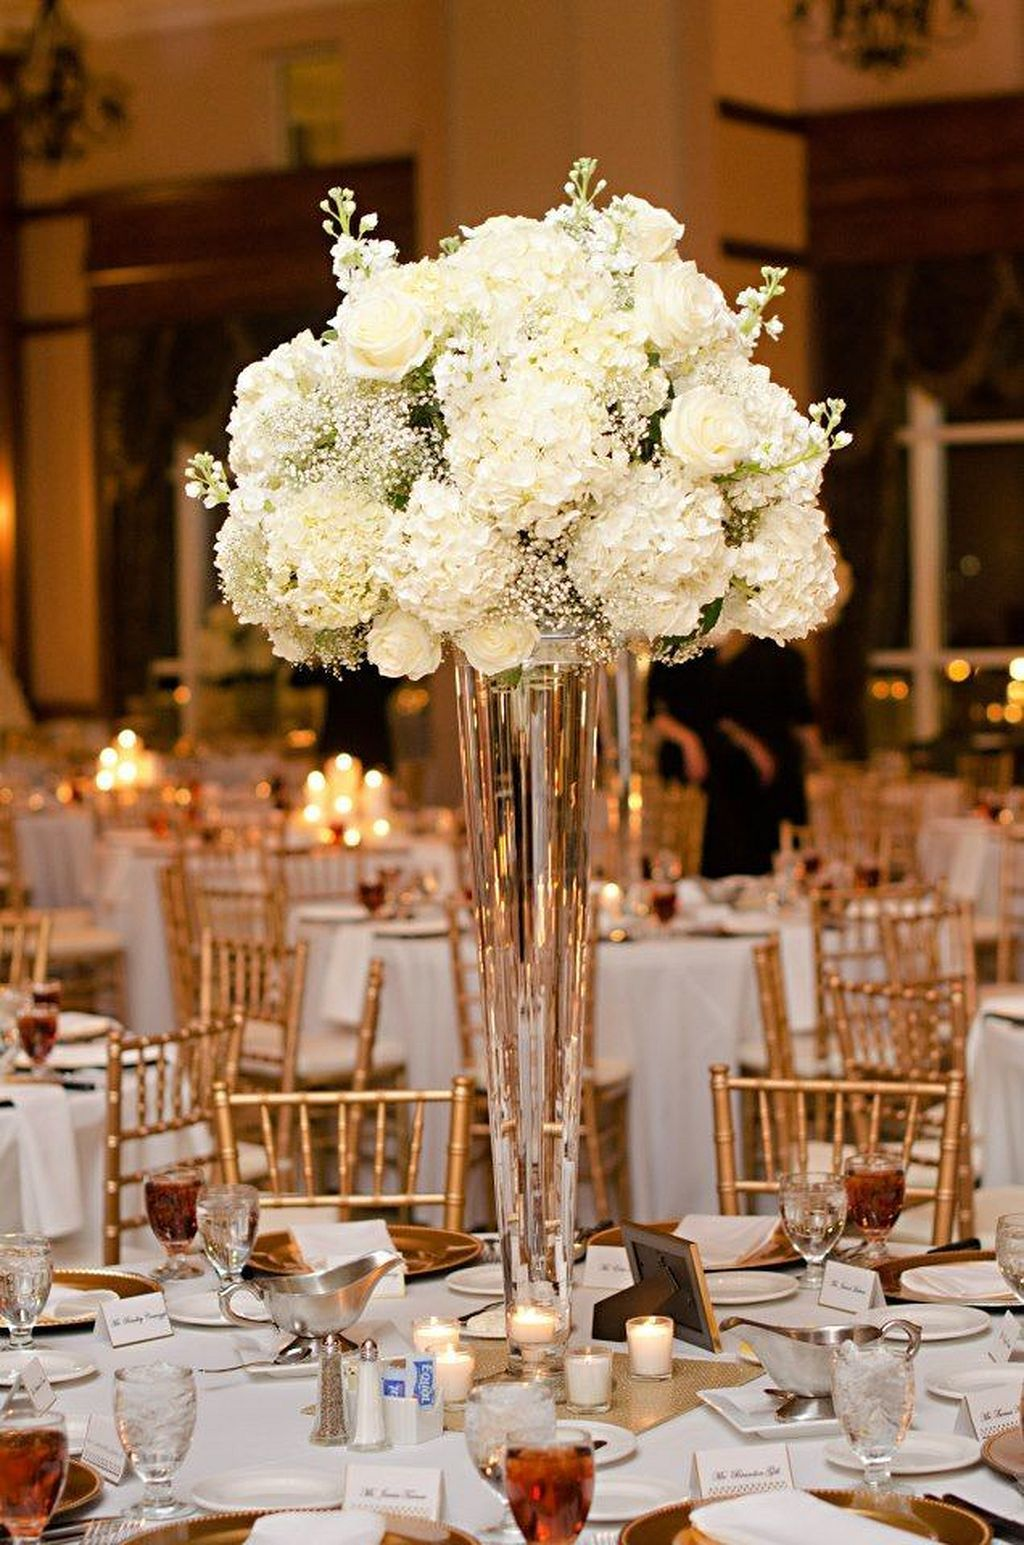 Christian wedding decoration designs   elegant floral wedding centerpiece ideas   Floral wedding